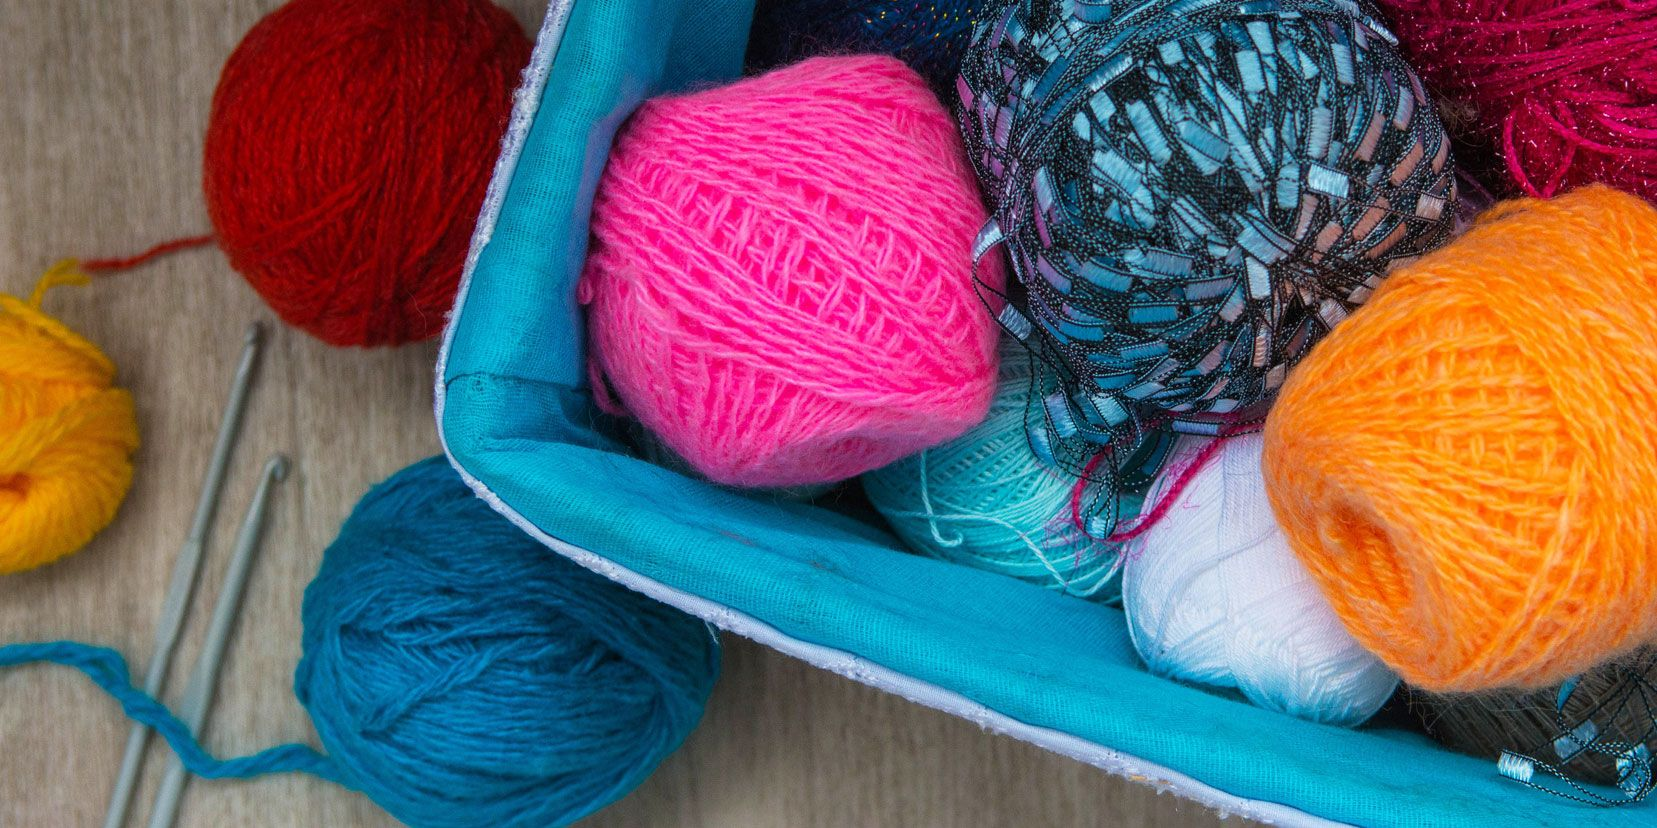 Charity calls for donations of 3 items to help keep the elderly warm this winter